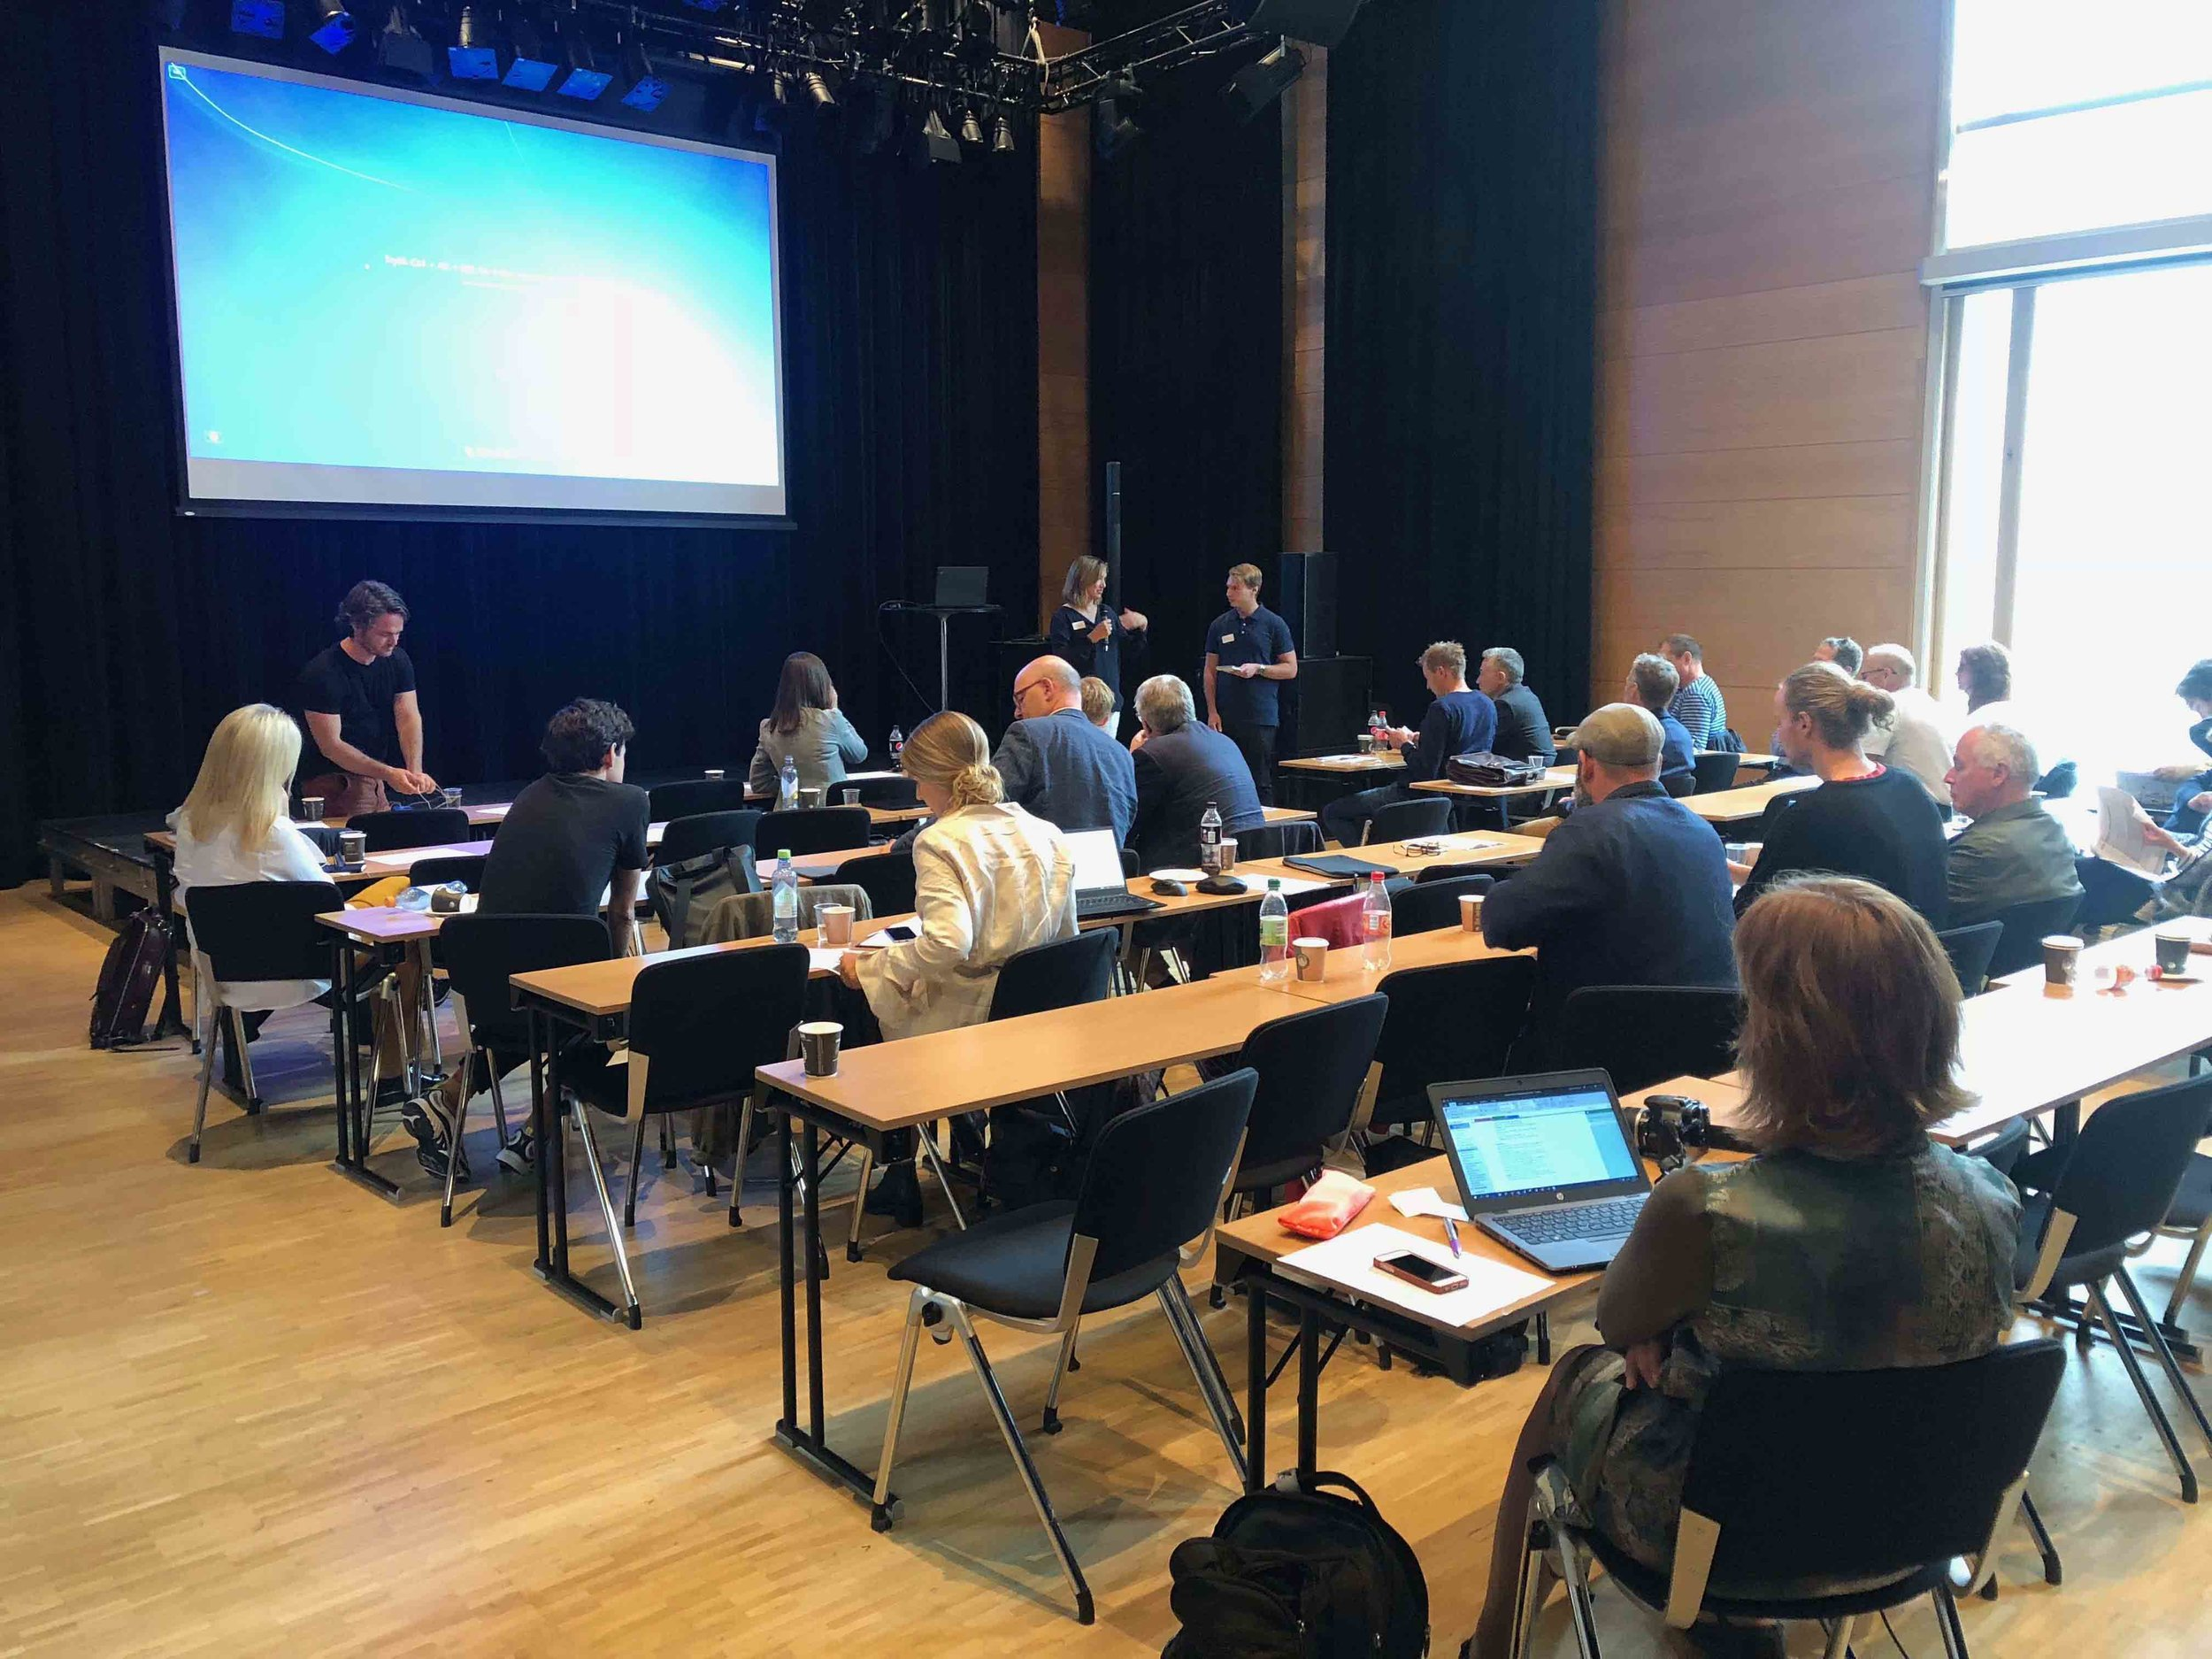 Lørenskog Station Area Commences - 22.08.2018 - Lørenskog Hus, Lørenskog - a formal initiation meeting was set in Lørenskog Hus, so that the selected teams for this parallel commission could meet up with the other teams, and the municipality. With Edit/atelier, Tin got to meet the mayor, local officials, various local and national property developers, public transport enterprises etc.The challenges was equally big as the potentials demanding coherency, going into topics such as flooding, commercial interests, public transport, electricity, winterpark strategy with extensive housing areas etc.